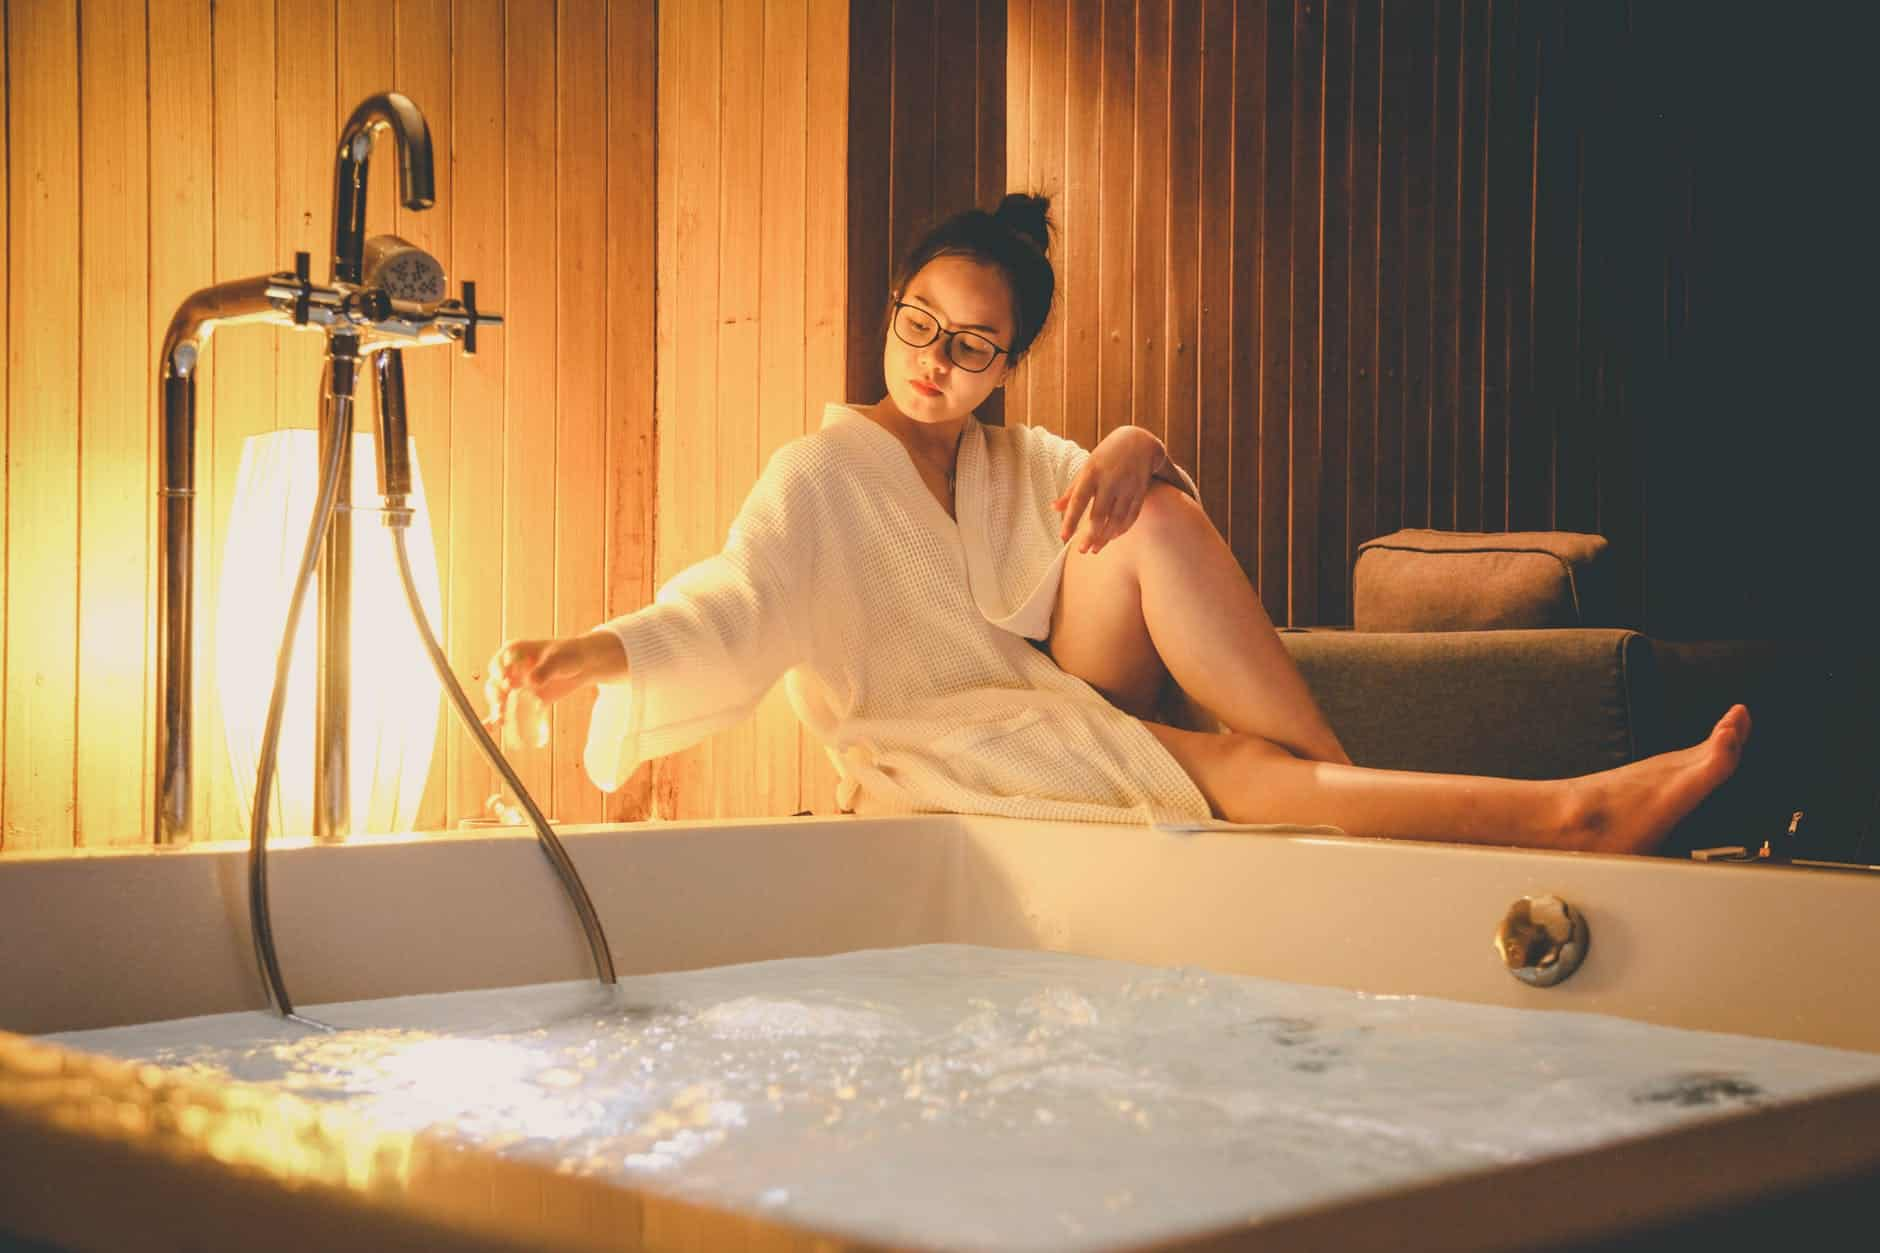 How to Practice Self-Care Without Breaking the Bank